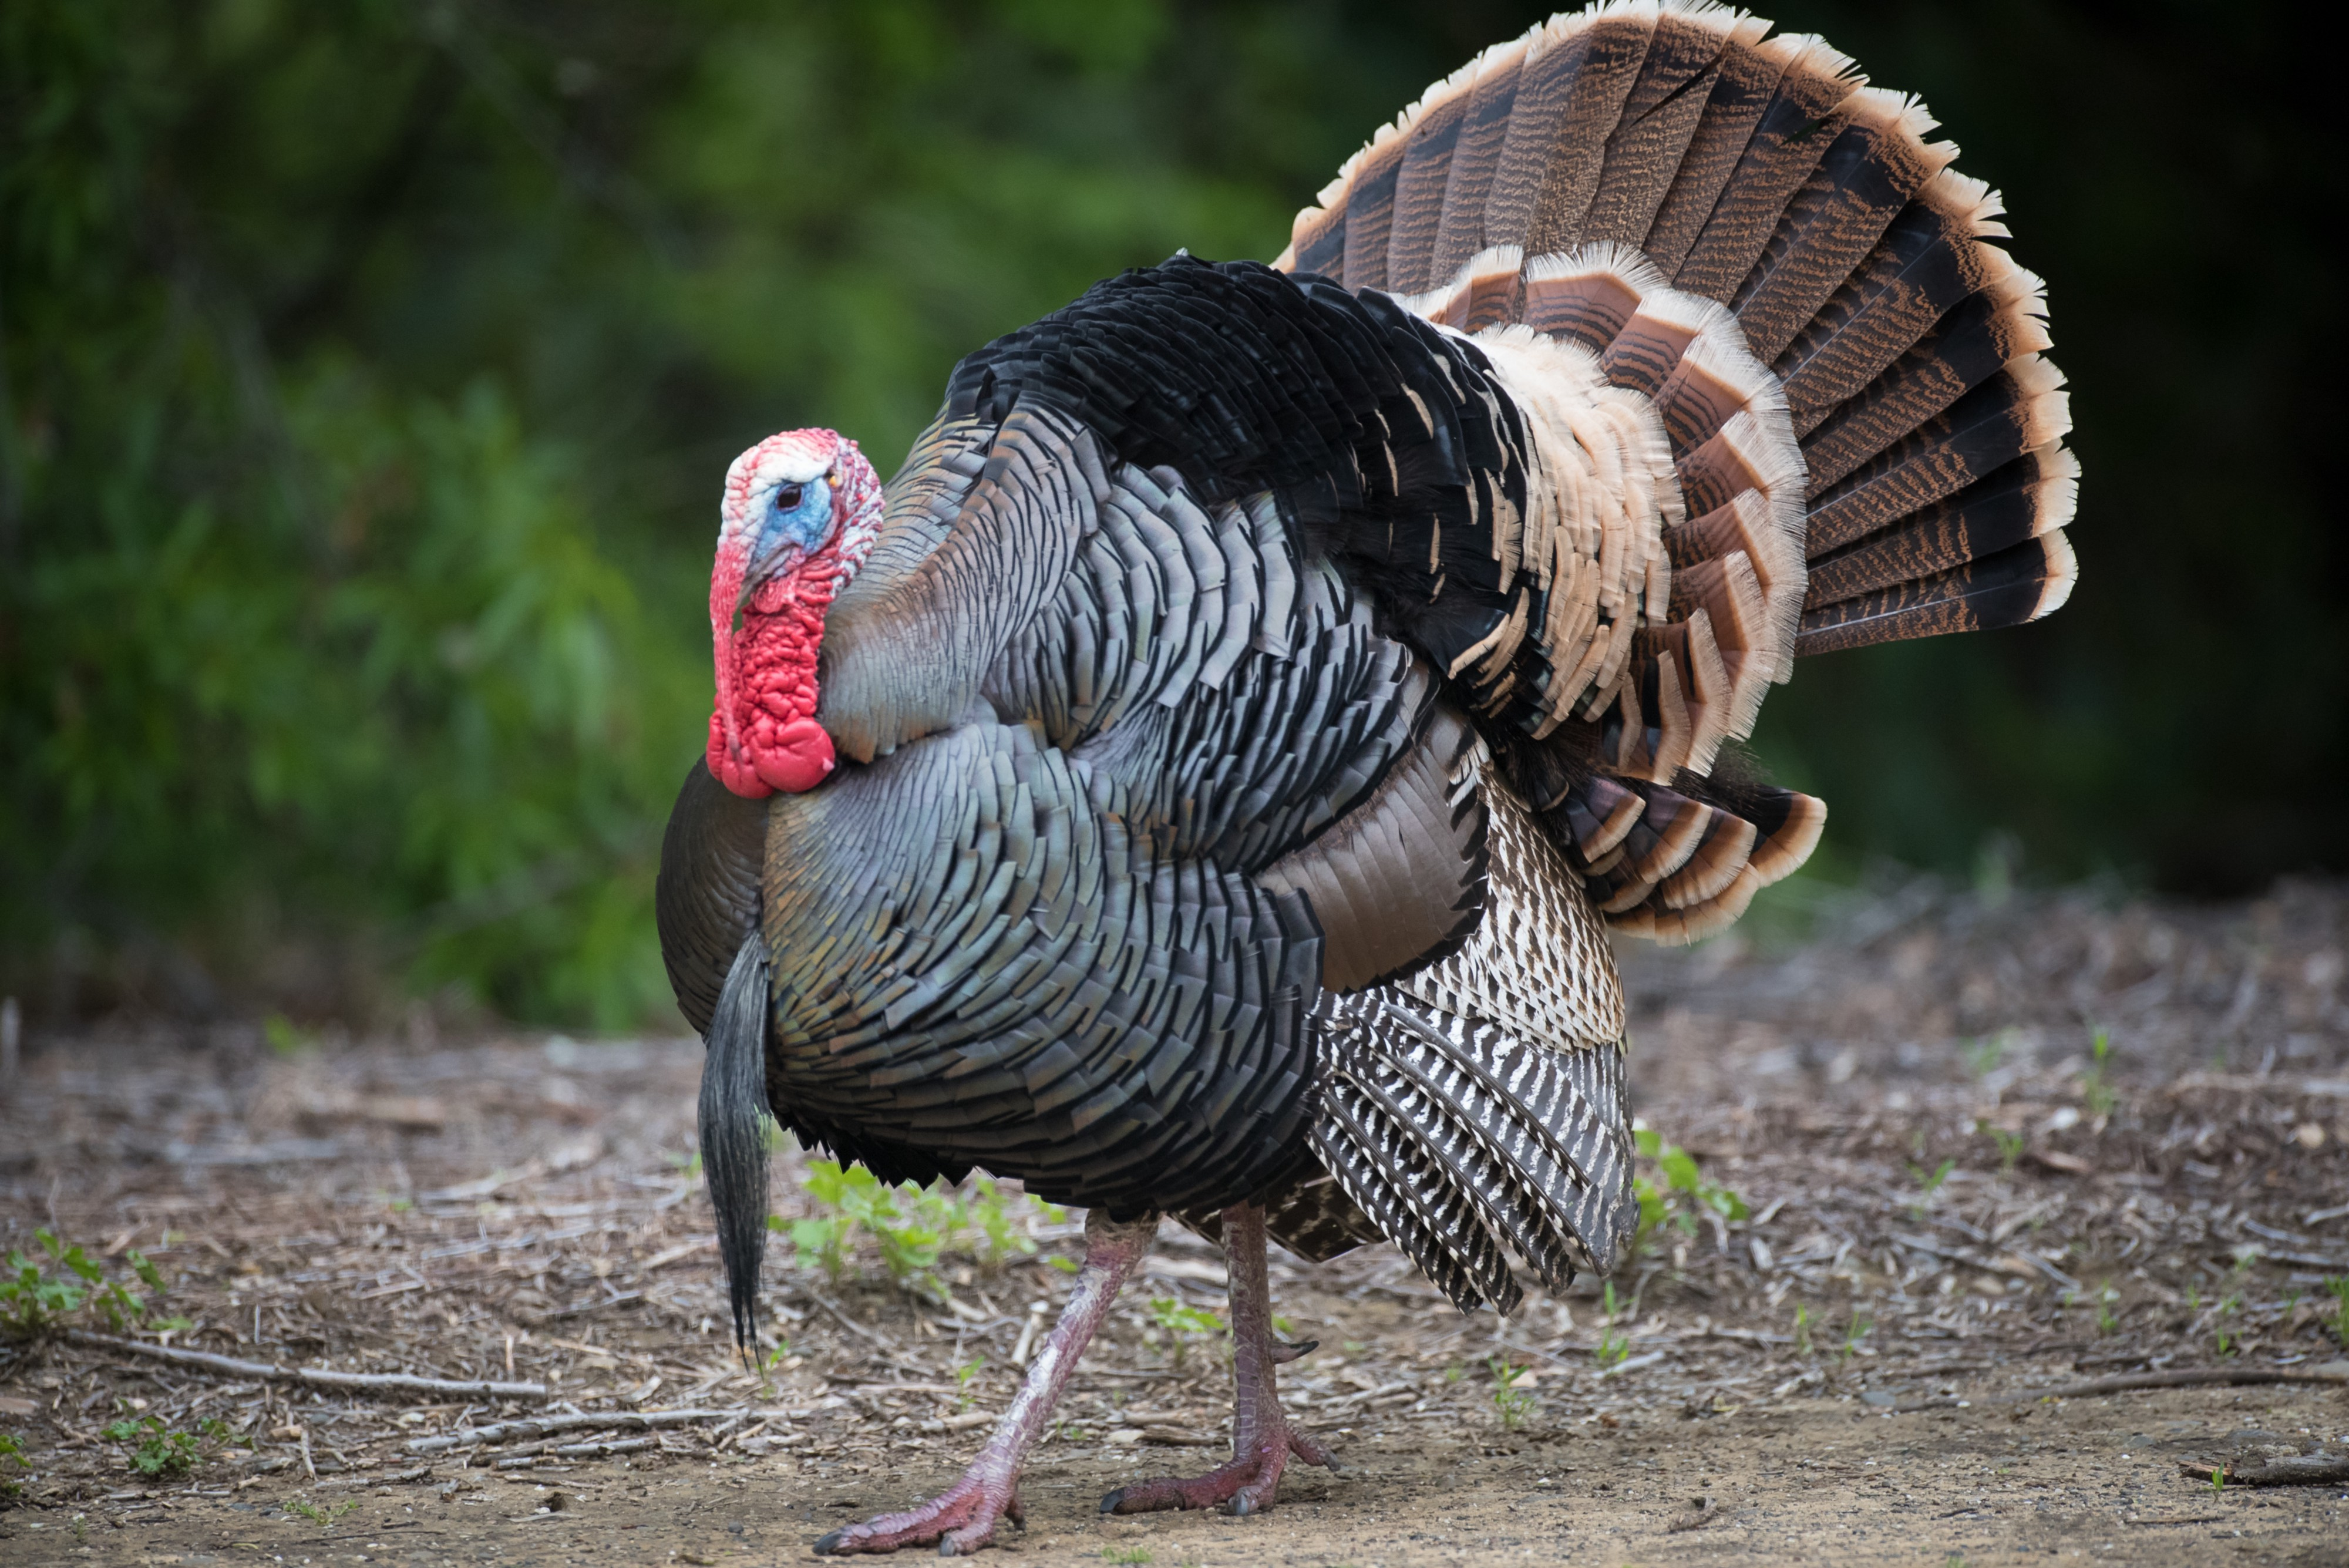 A tom turkey spreads his tail fan while walking in a clearing.